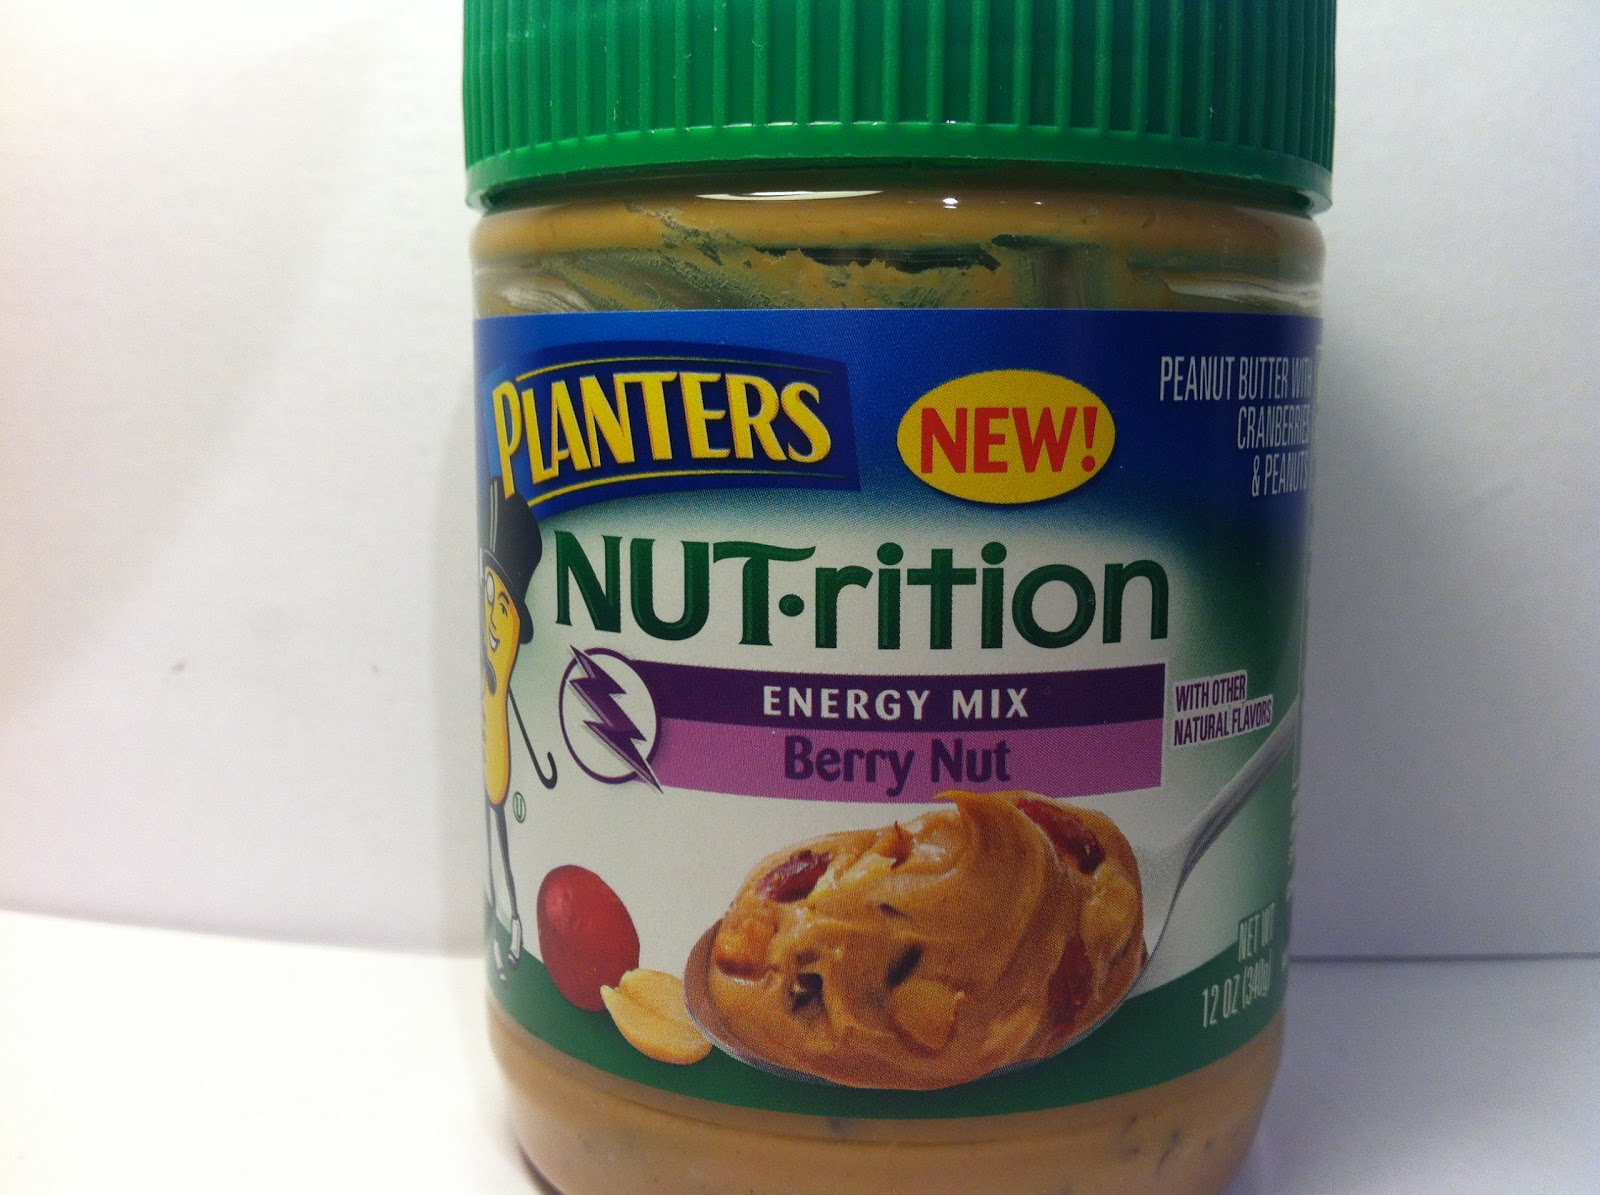 planters crackers, planters pecans, planters sunflower kernels, planters guy, planters logo, planters nutmobile, planters nut bar, planters almonds, planters holiday pack, planters brittle nut medley, planters honey roasted, planters walnuts, planters nut man, planters cashews, planters holiday collection, planters peanutbutter, planters mixed nuts, planters potato chips, planters sunflower seeds, planters candy, on planters natural peanut er review